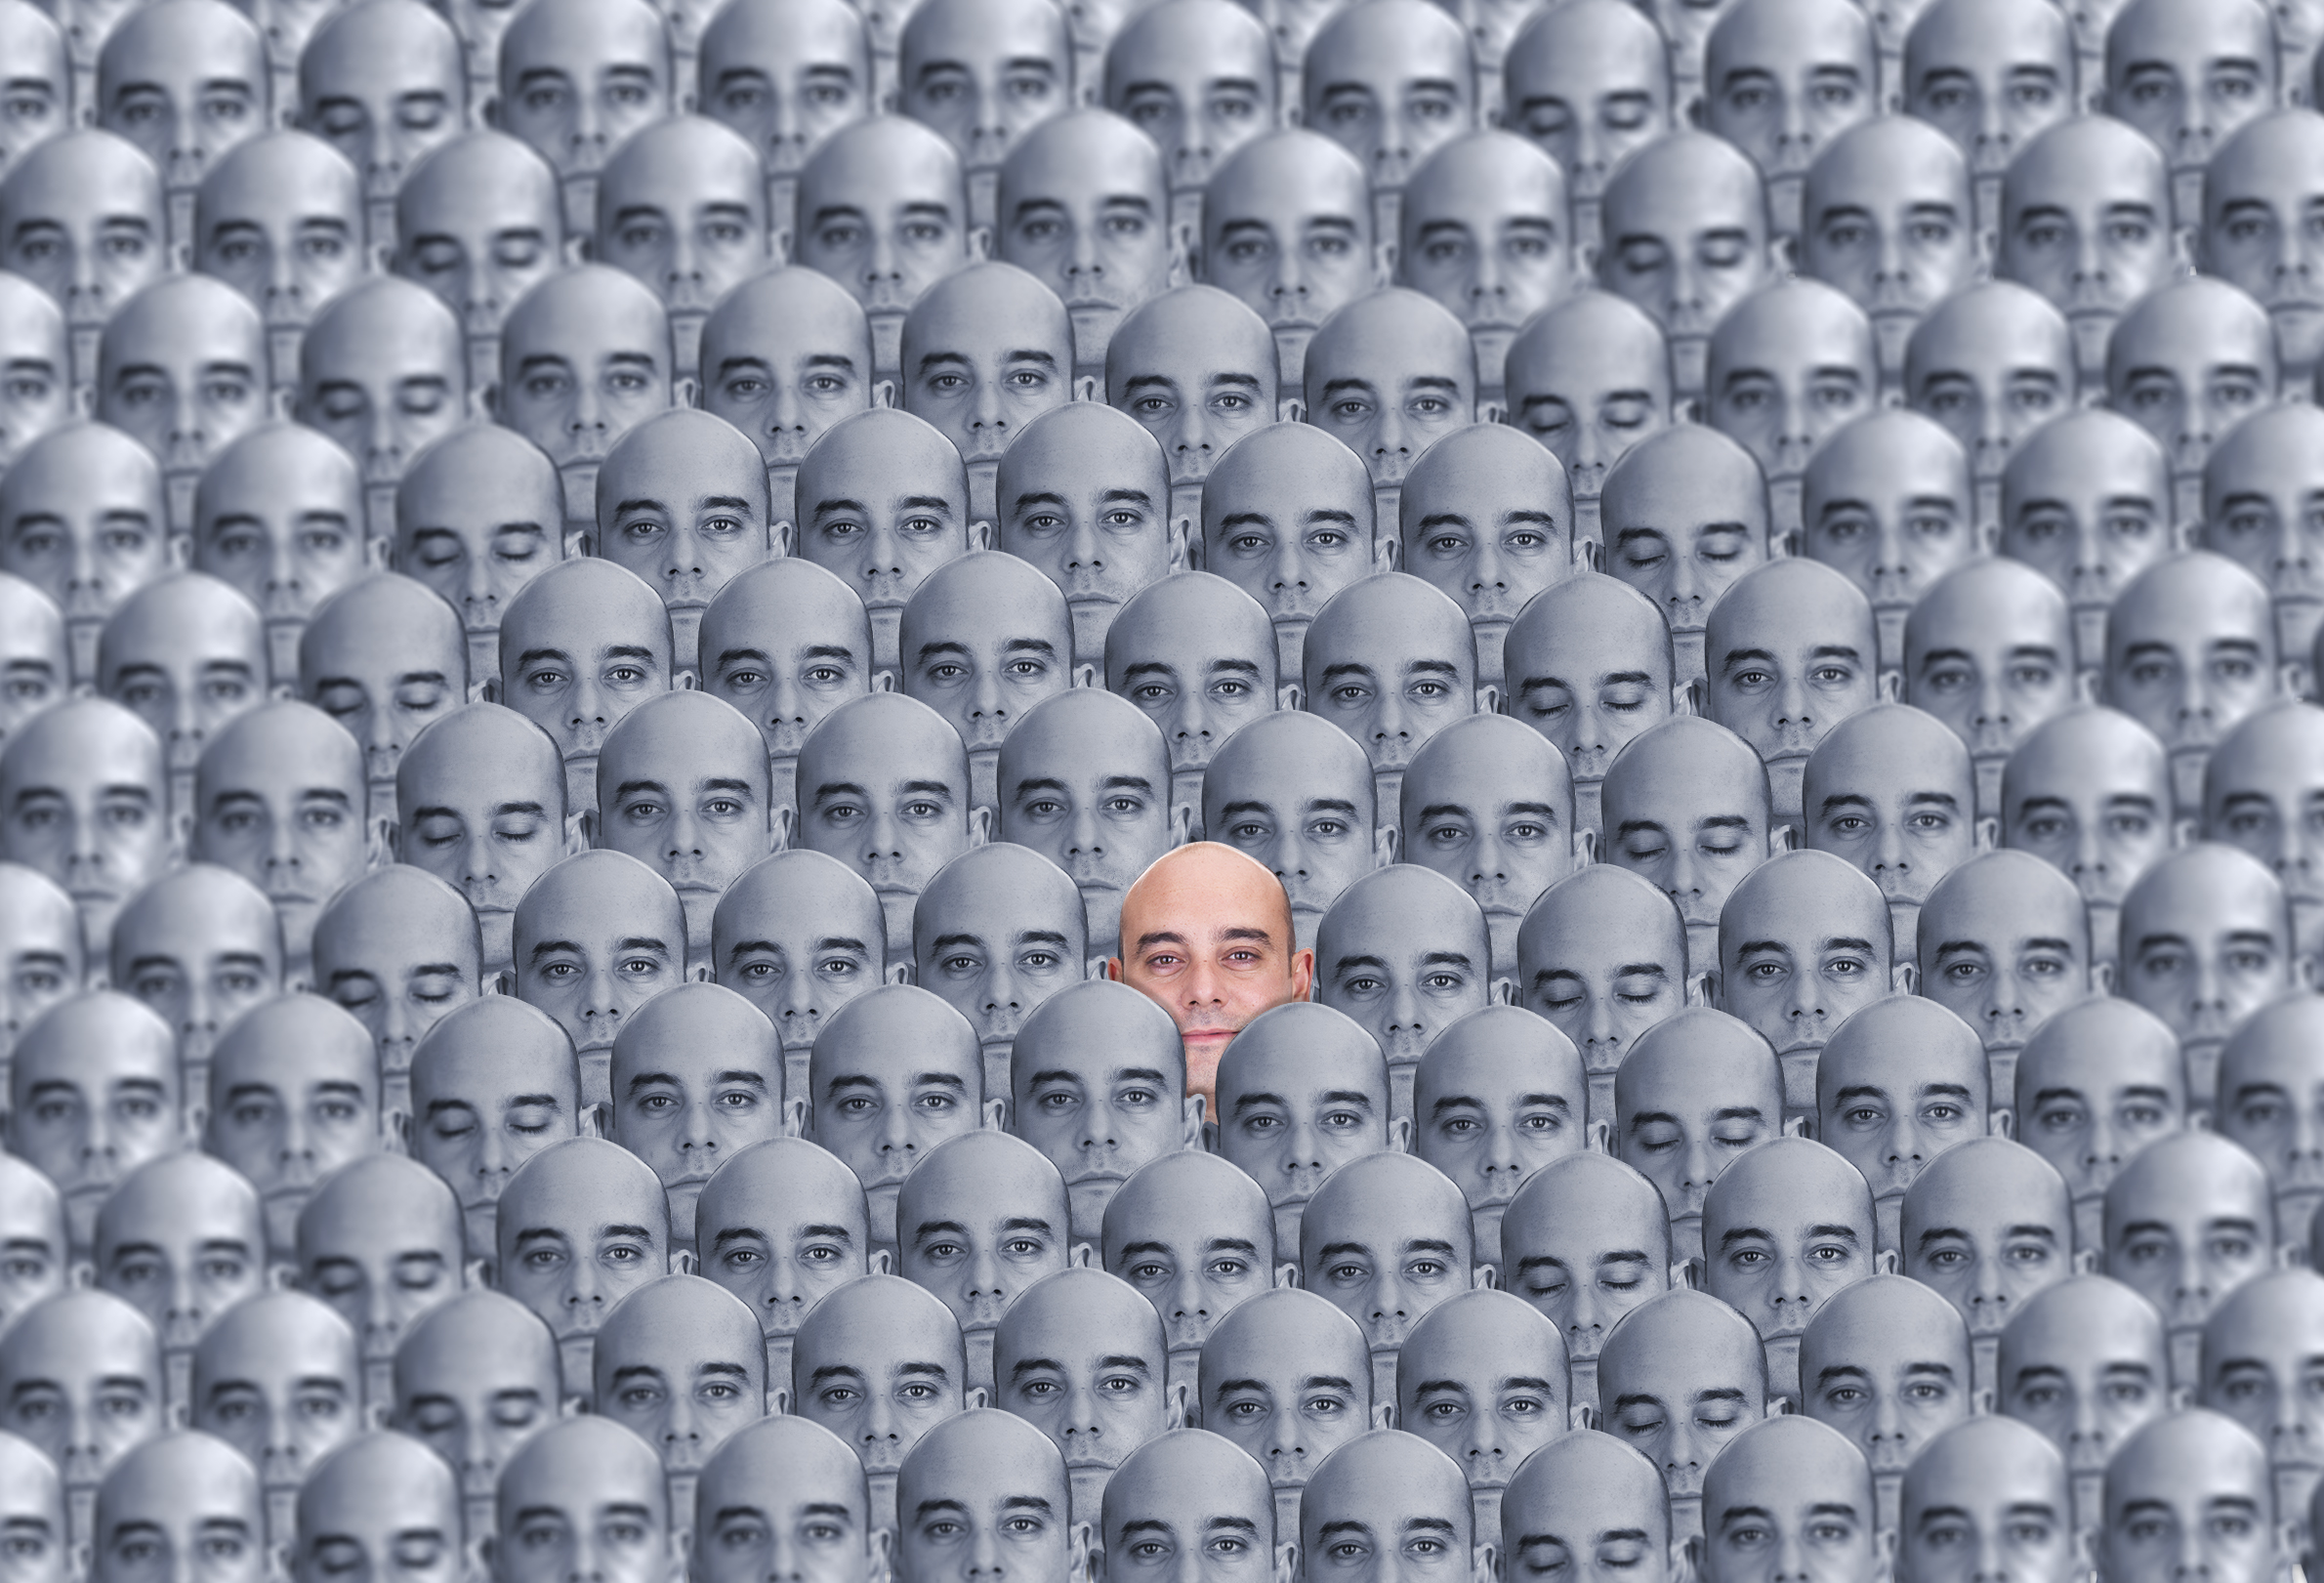 Crowd of heads